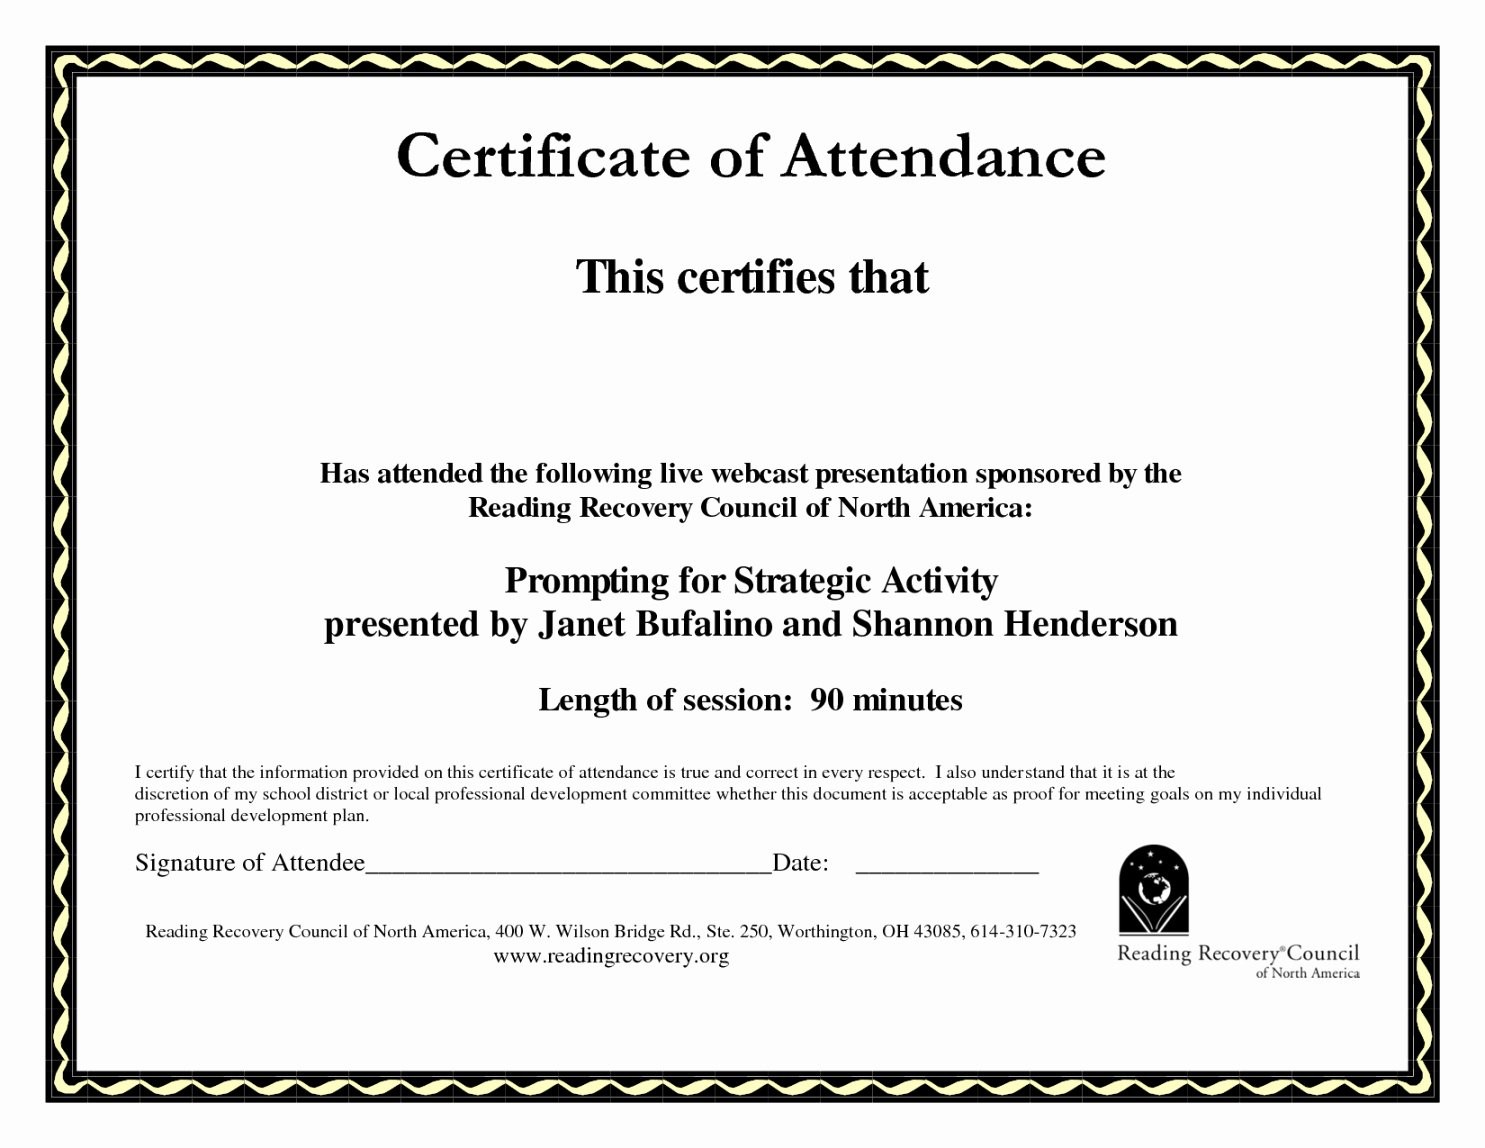 Perfect attendance Certificate Template Word Luxury Certificate Perfect attendance Template